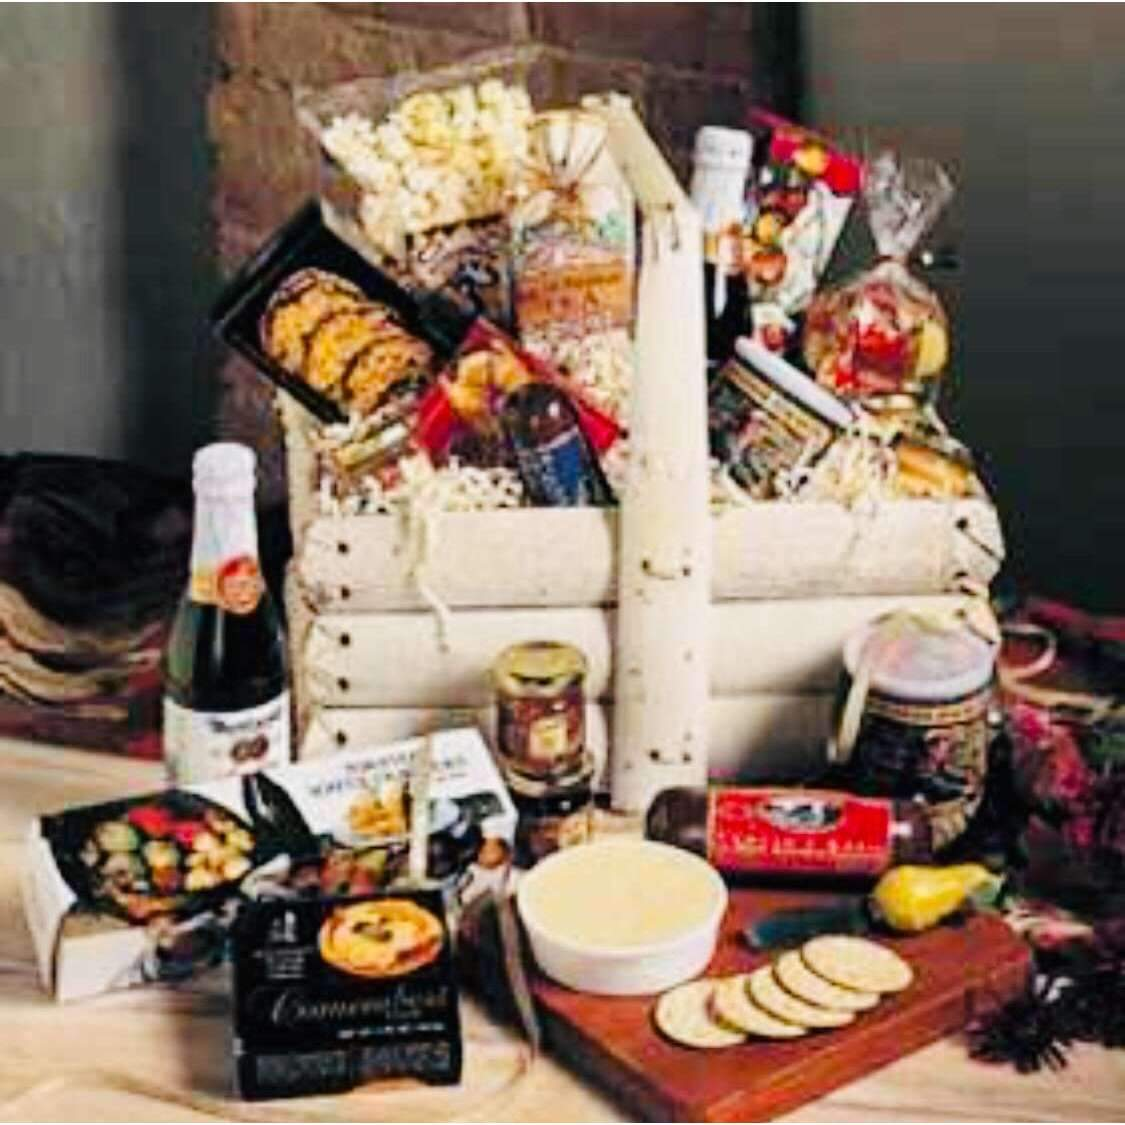 Choice Gourmet- 2 Options - Gift Baskets By Design SB, Inc.